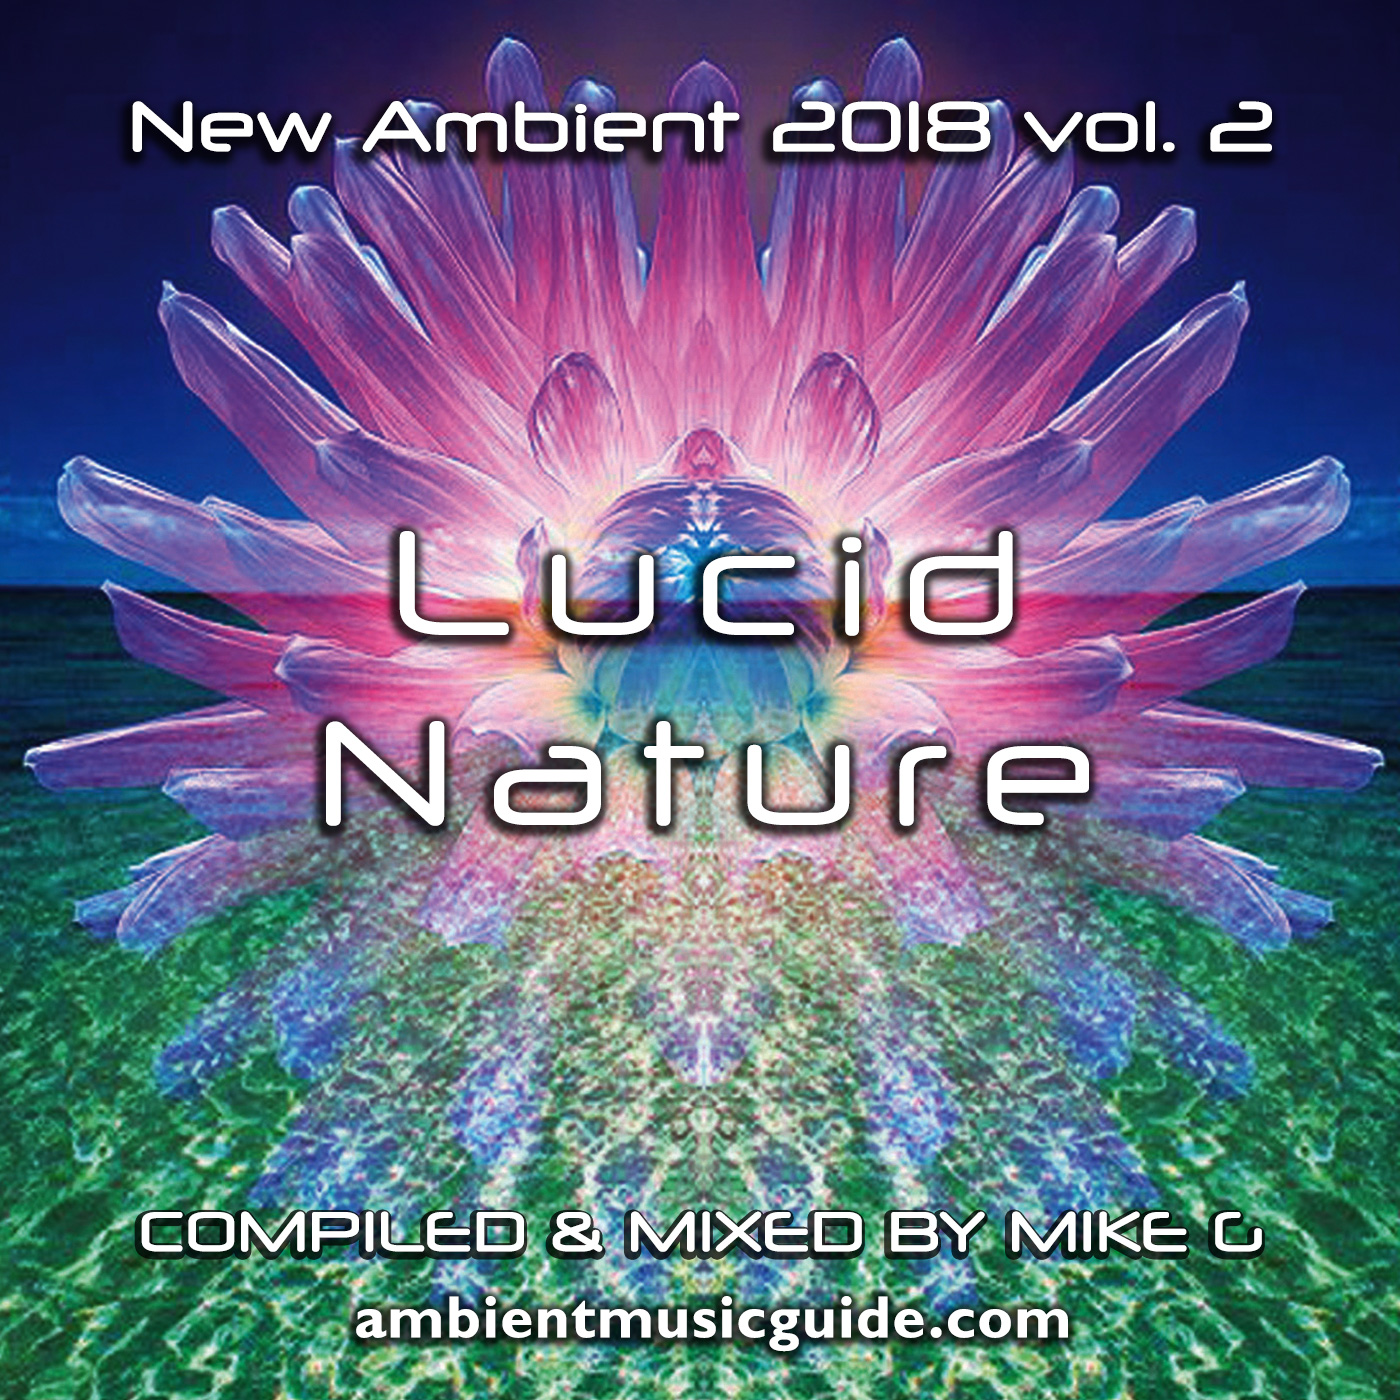 Lucid Nature - New Ambient 2018 vol. 2 mixed by Mike G